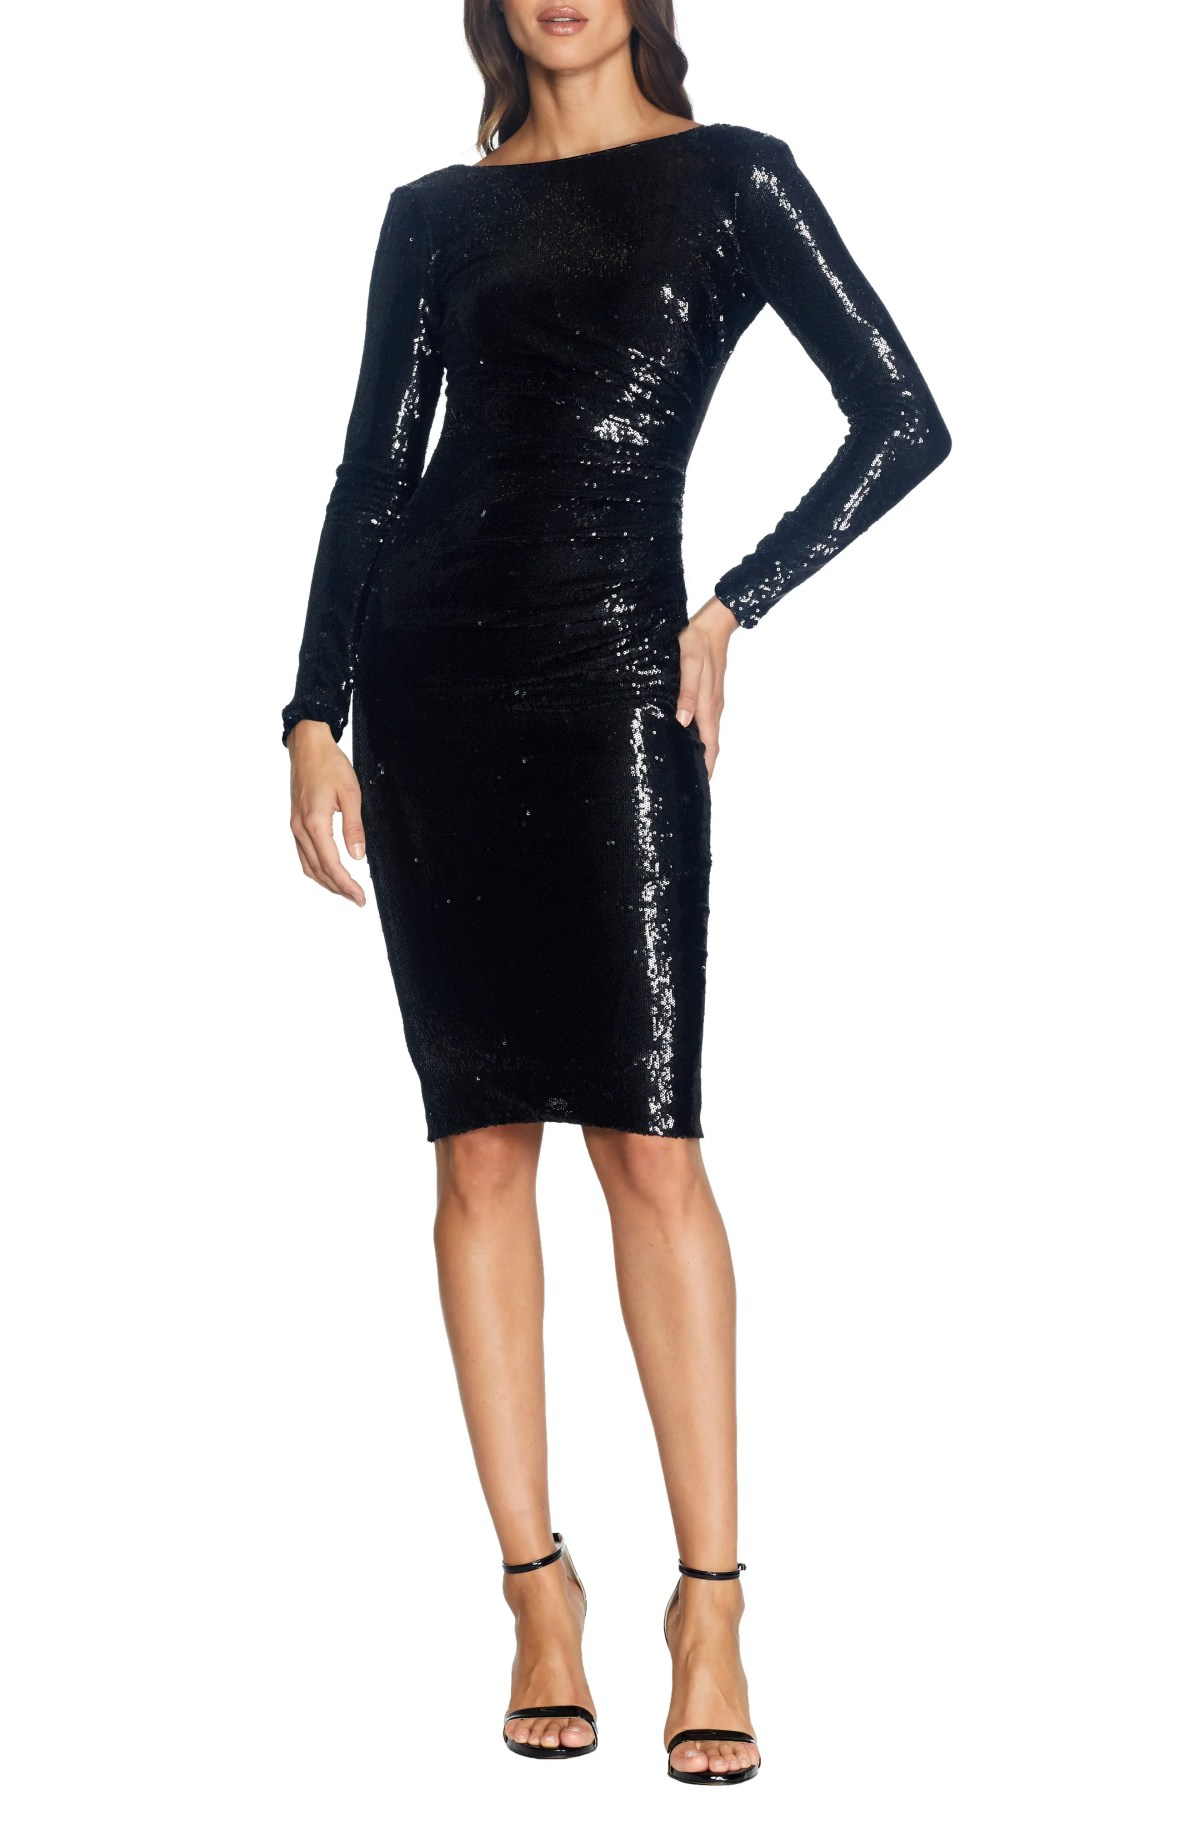 DRESS THE POPULATION Emilia Sequin Long Sleeve Cocktail Dress, Main, color, EBONY